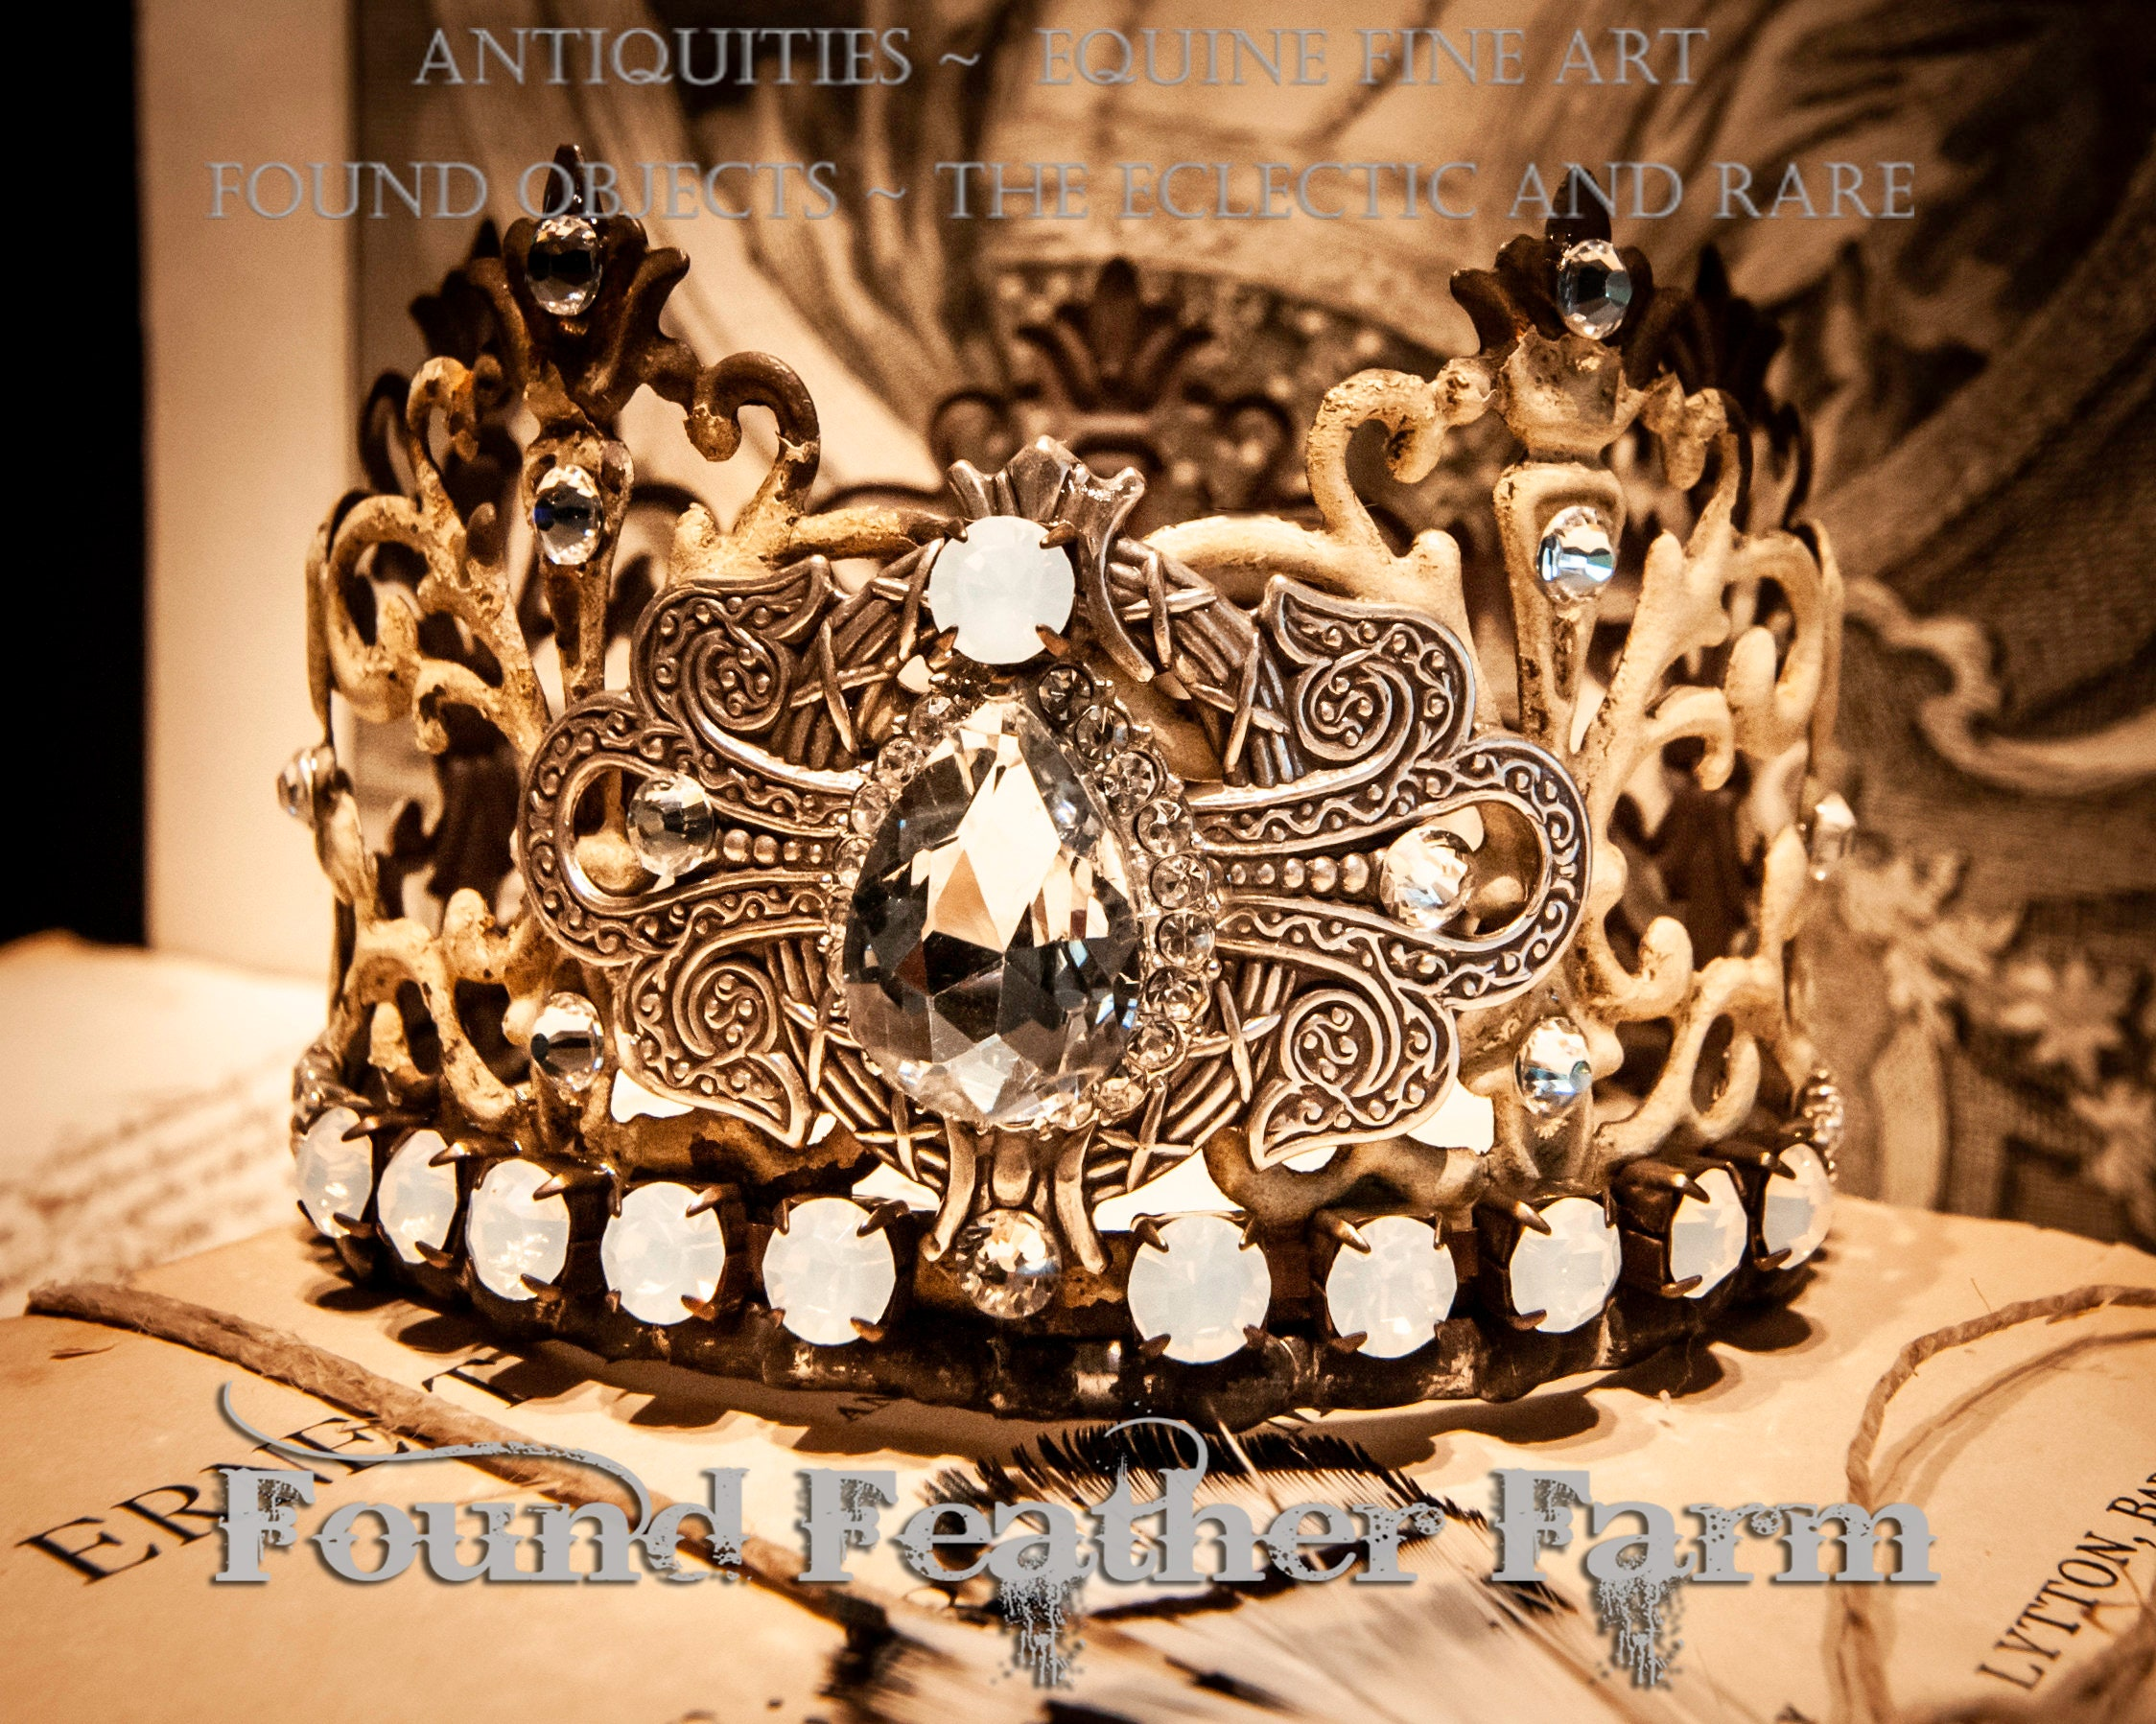 Beautiful Handmade Painted Small Metal Lace Crown Embellished with Vintage Rhinestone Jewels and Silver Findings